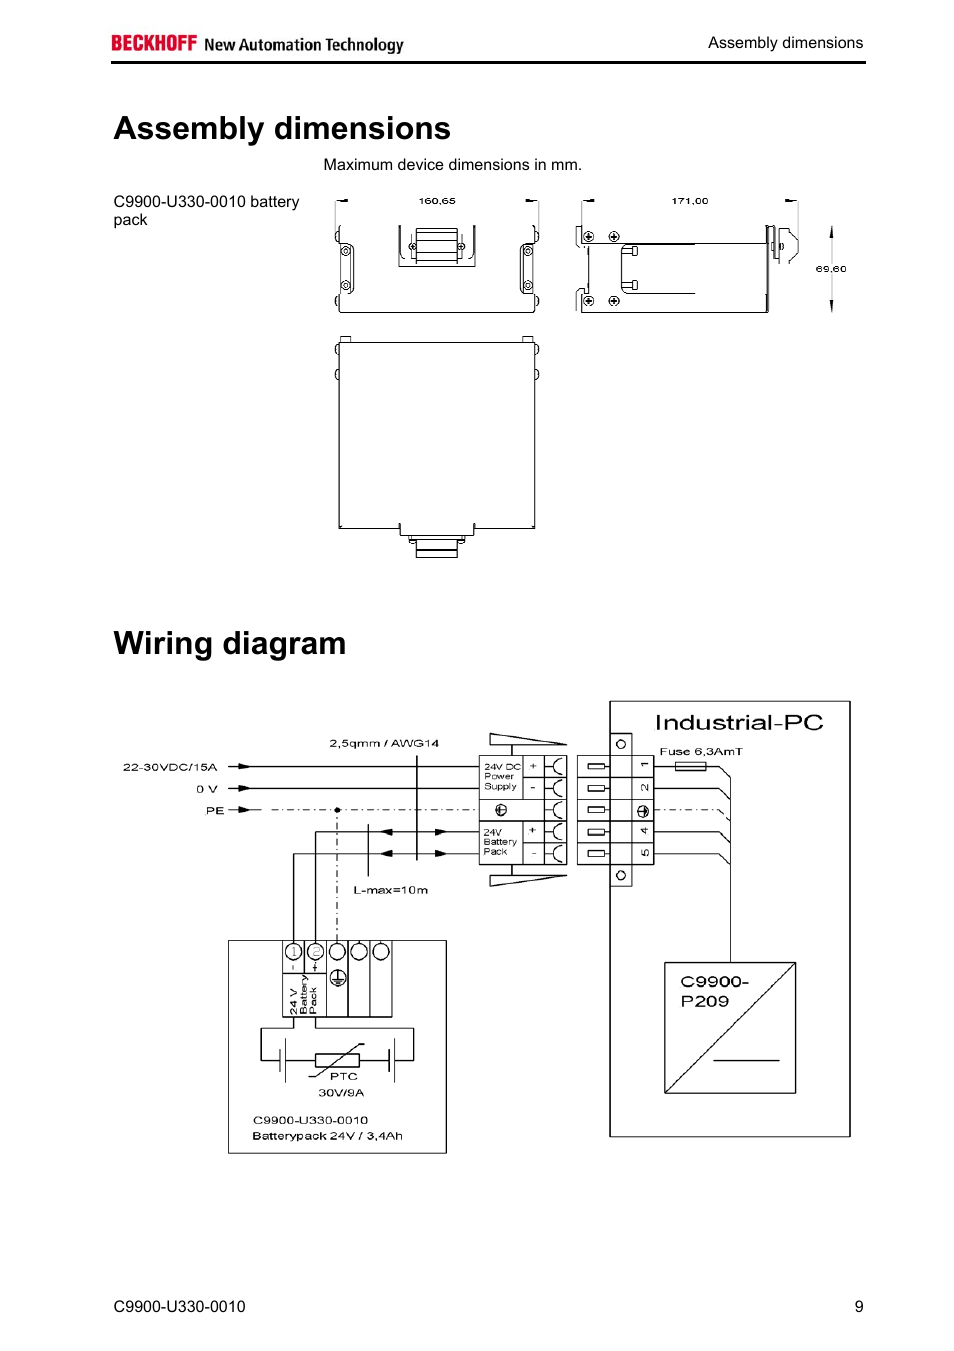 Assembly Dimensions Wiring Diagram Beckhoff C9900 U330 0010 User Manual Page 11 12